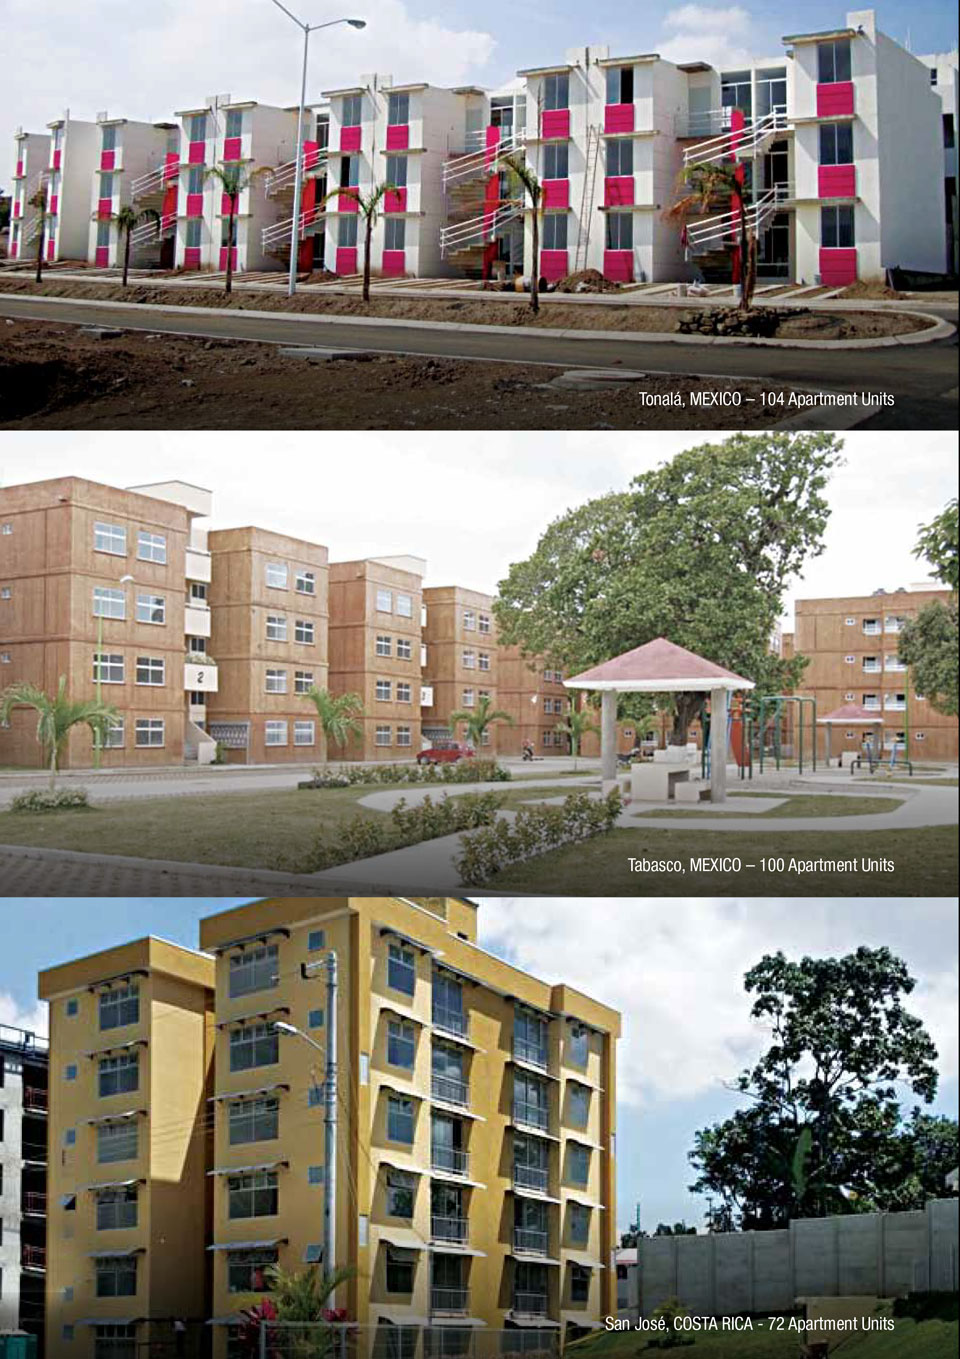 An image showing some of the projects CEMEX has done with the Vertical Housing solution.